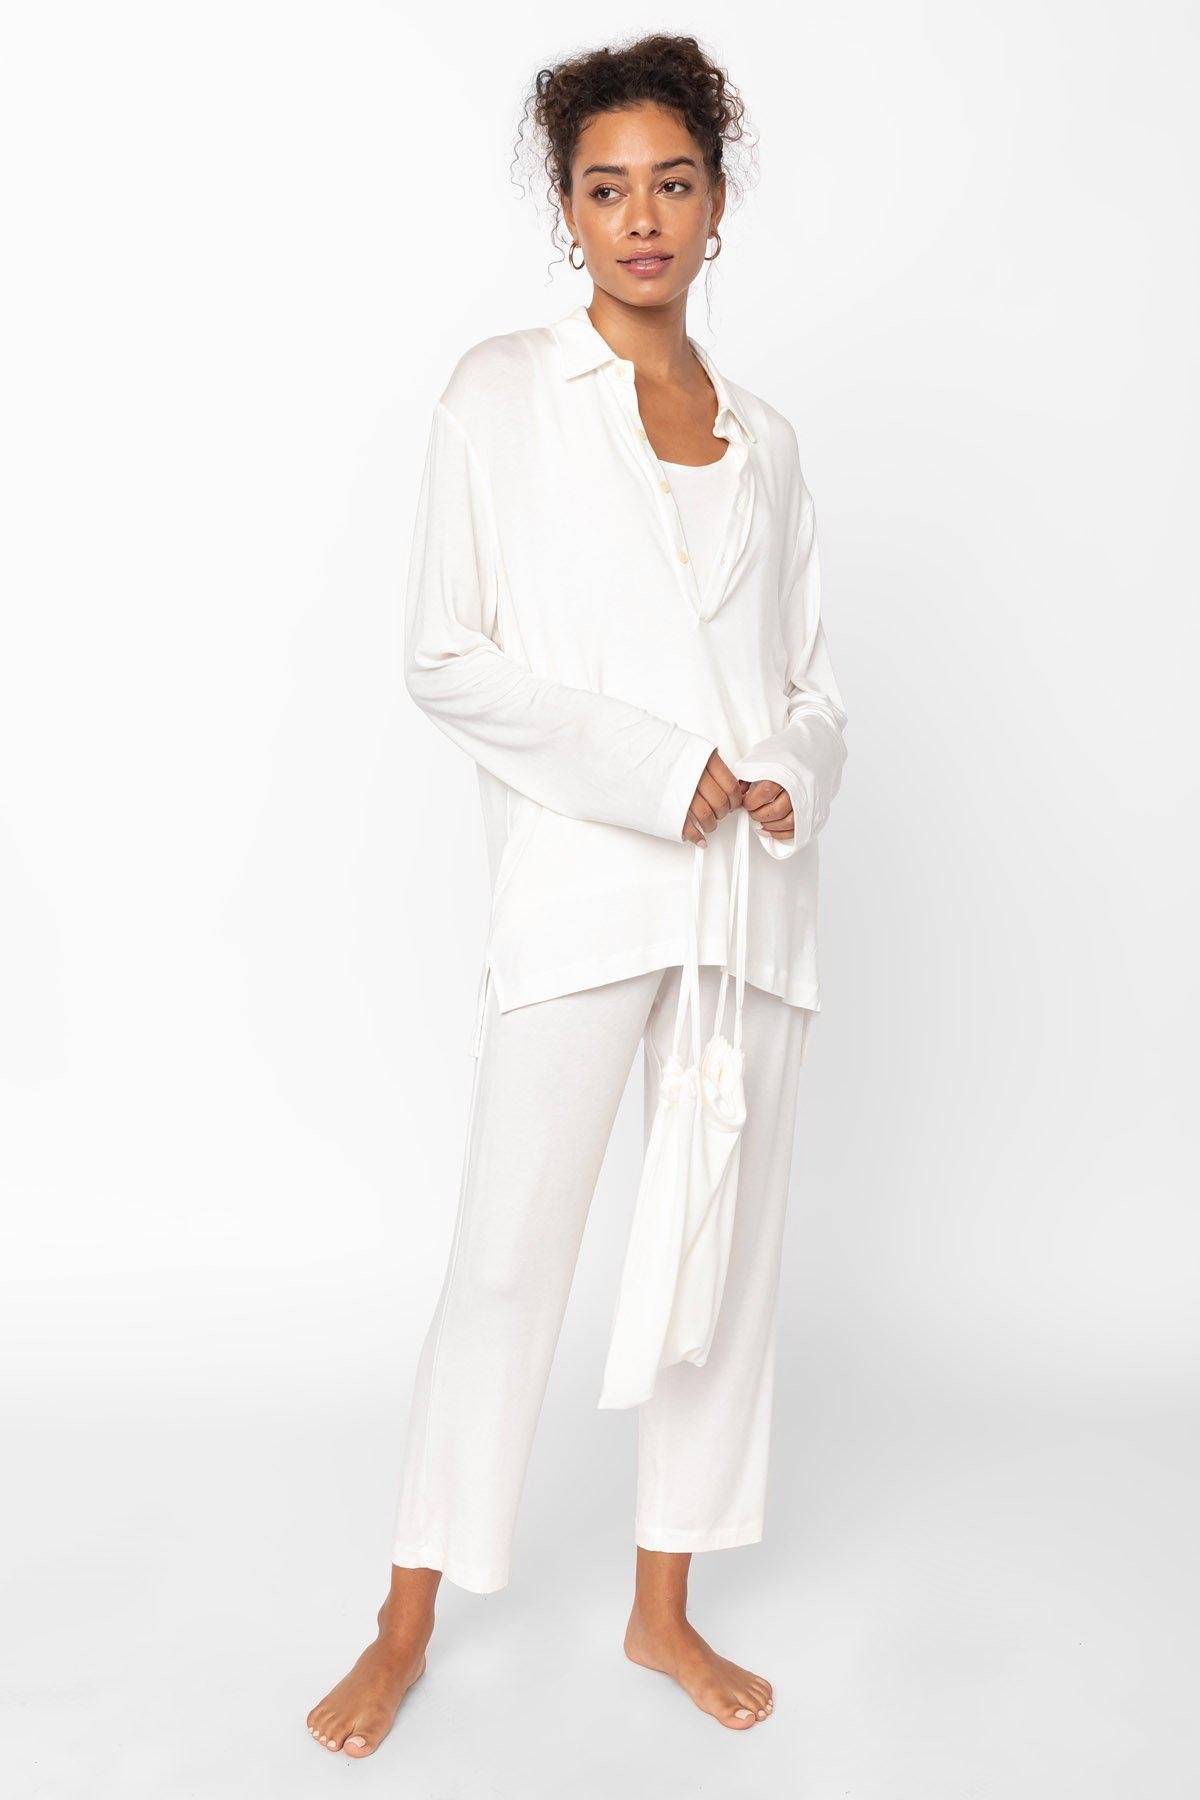 Nora Nuit Half Button Up - White 1